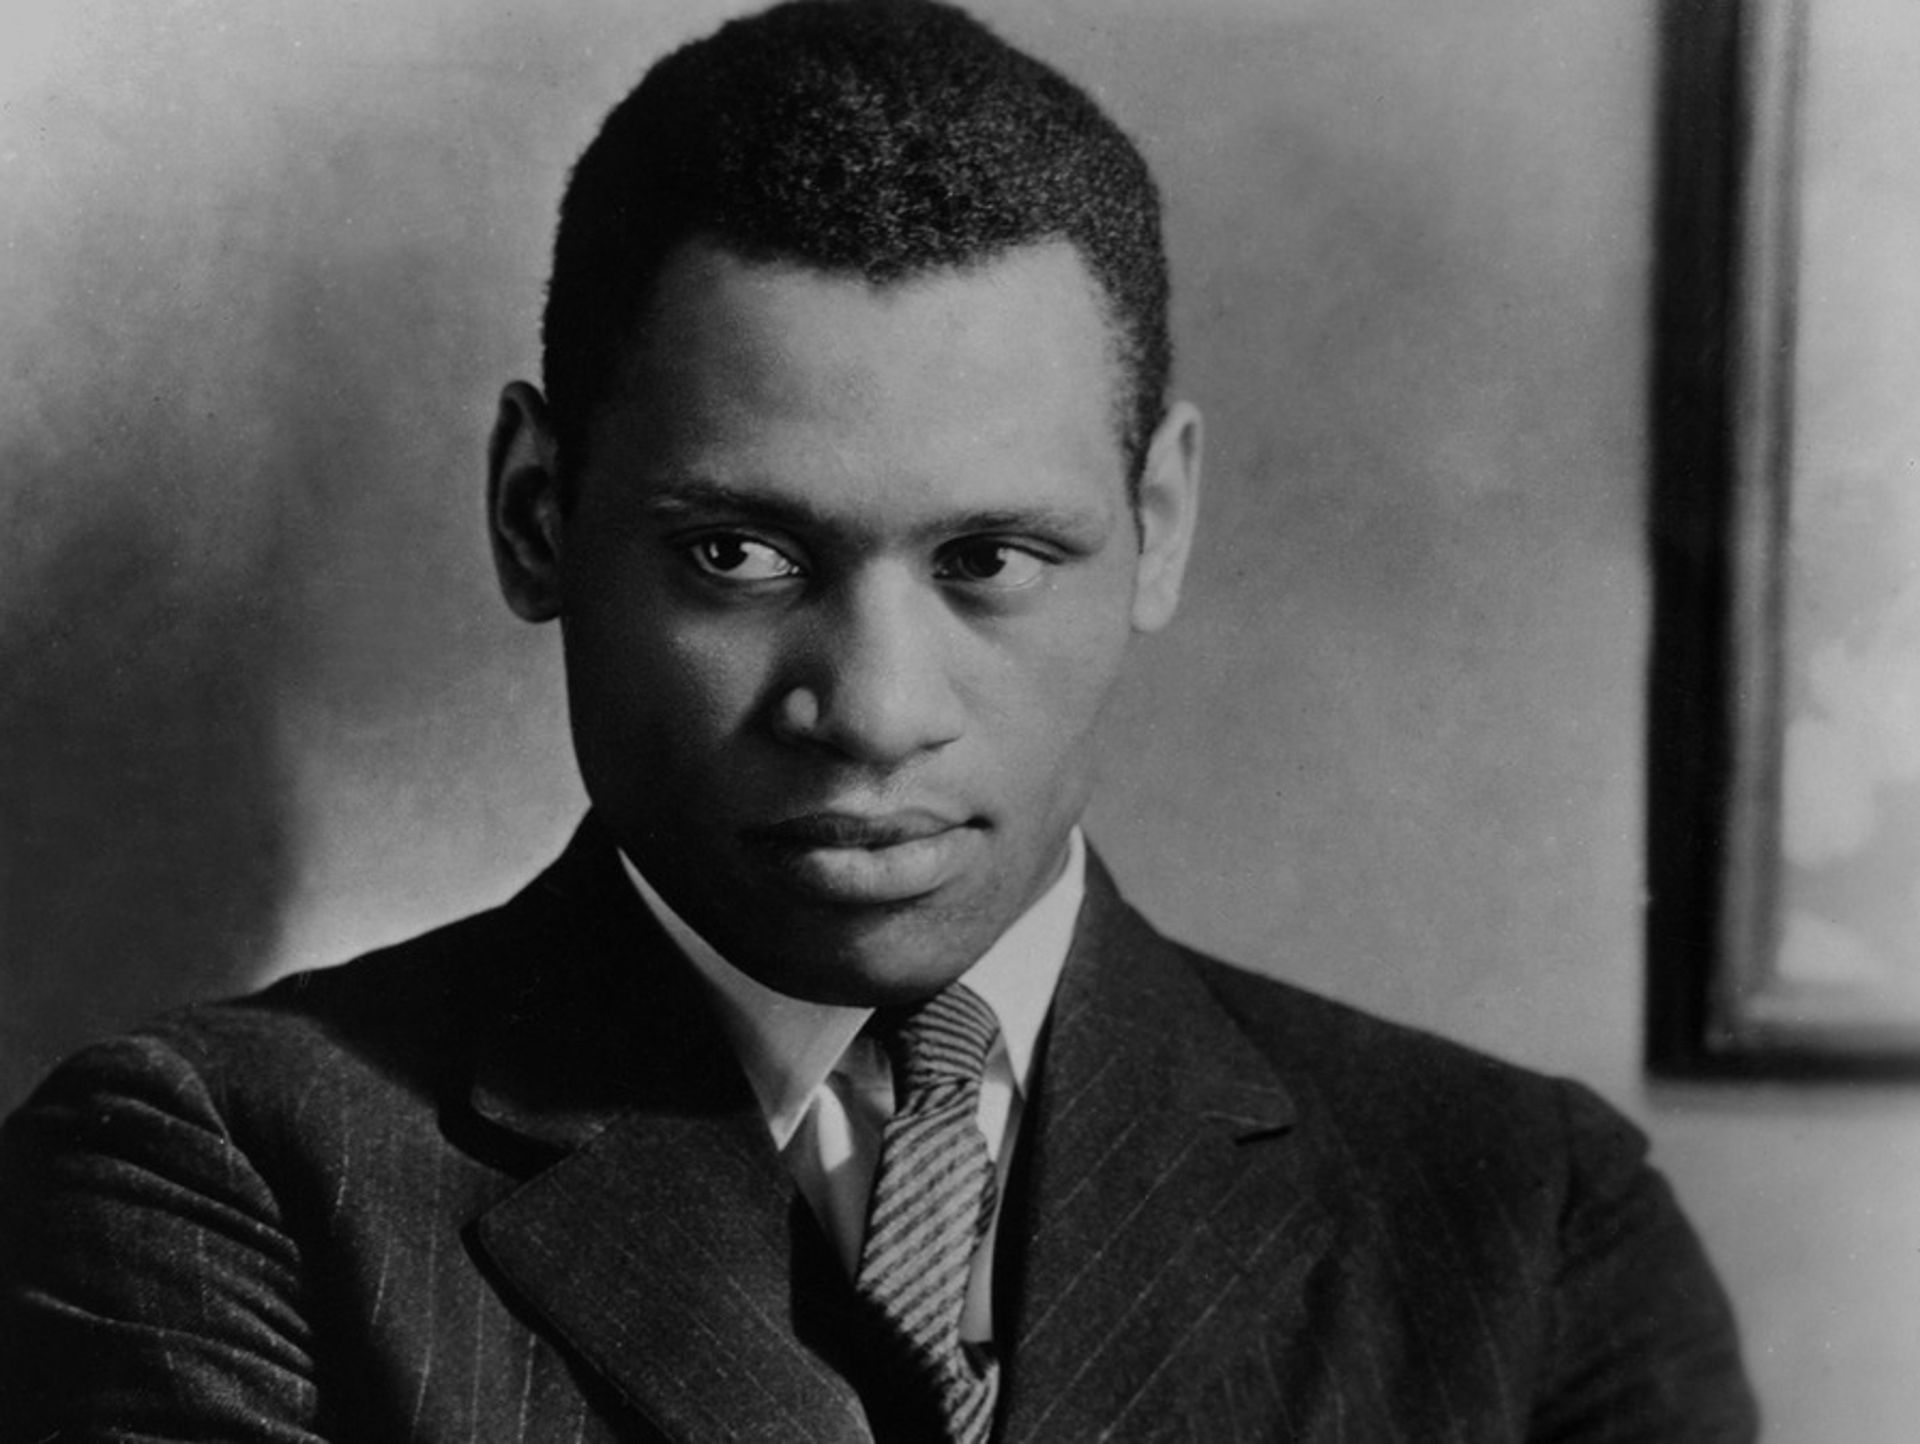 Oscar Micheaux, impresario of the race films that offered an alternative to Hollywood stereotypes